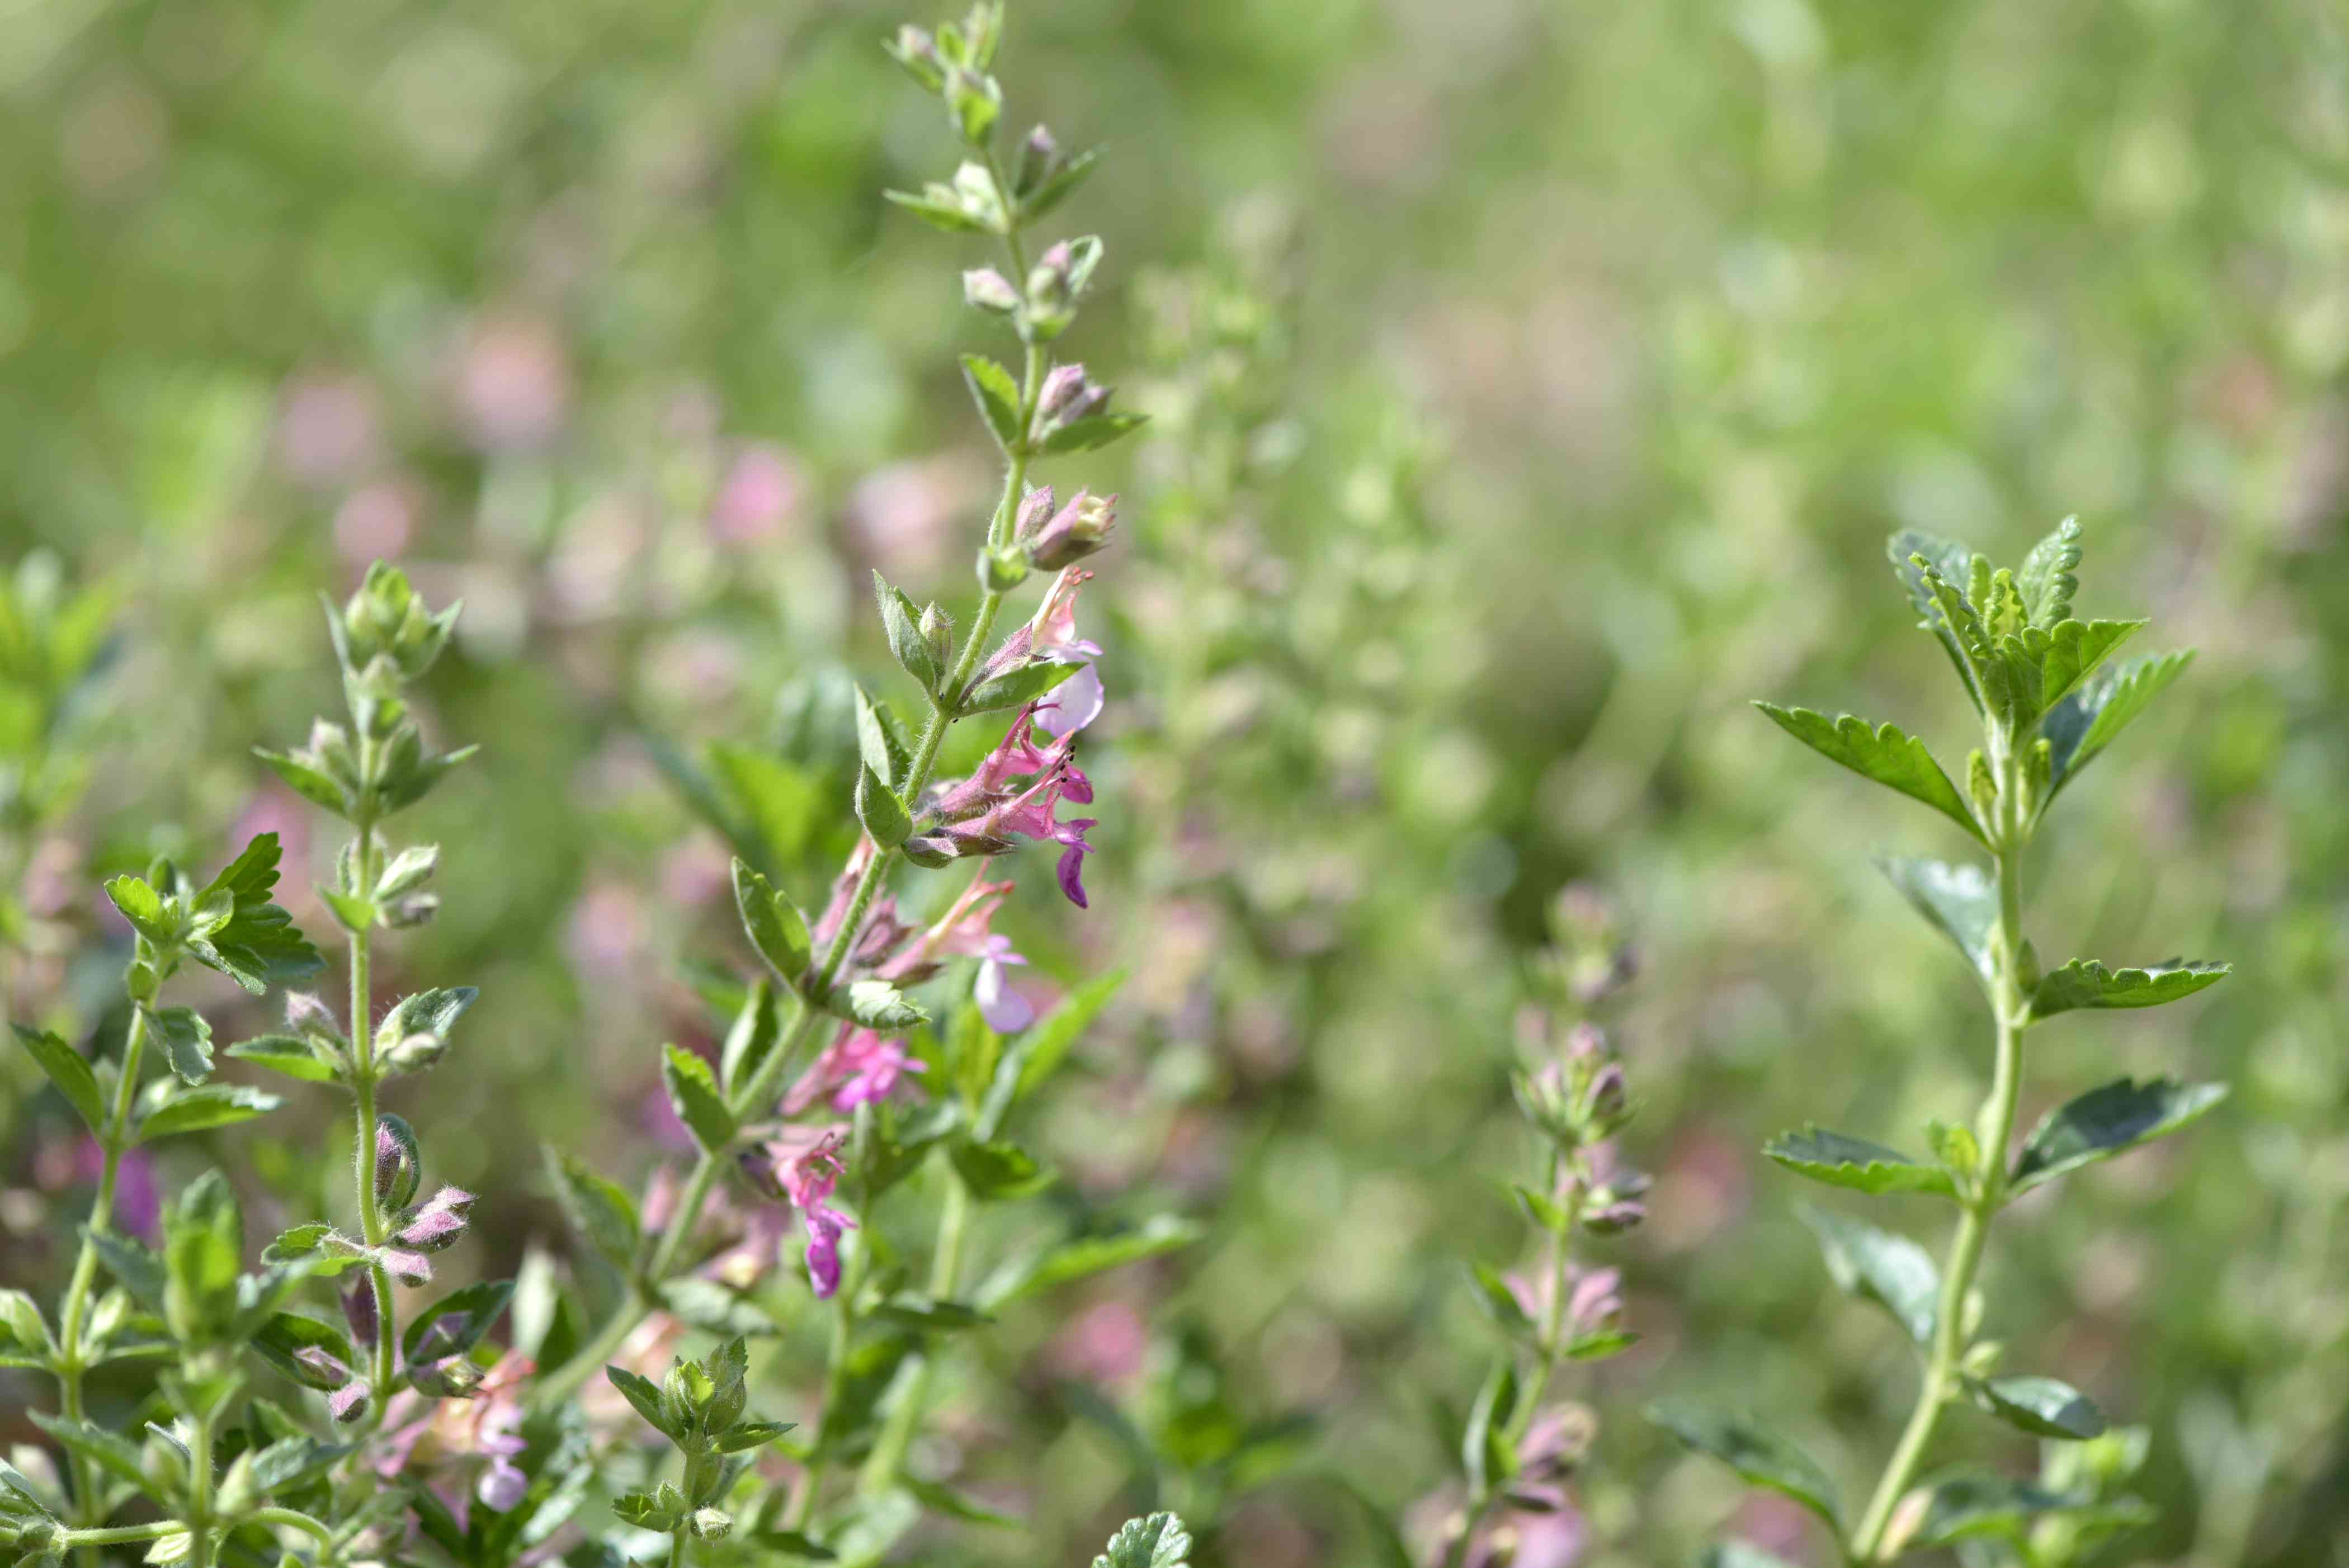 Wall germander with tooth edged leaves and light purple flowers on thin stem in sunlight